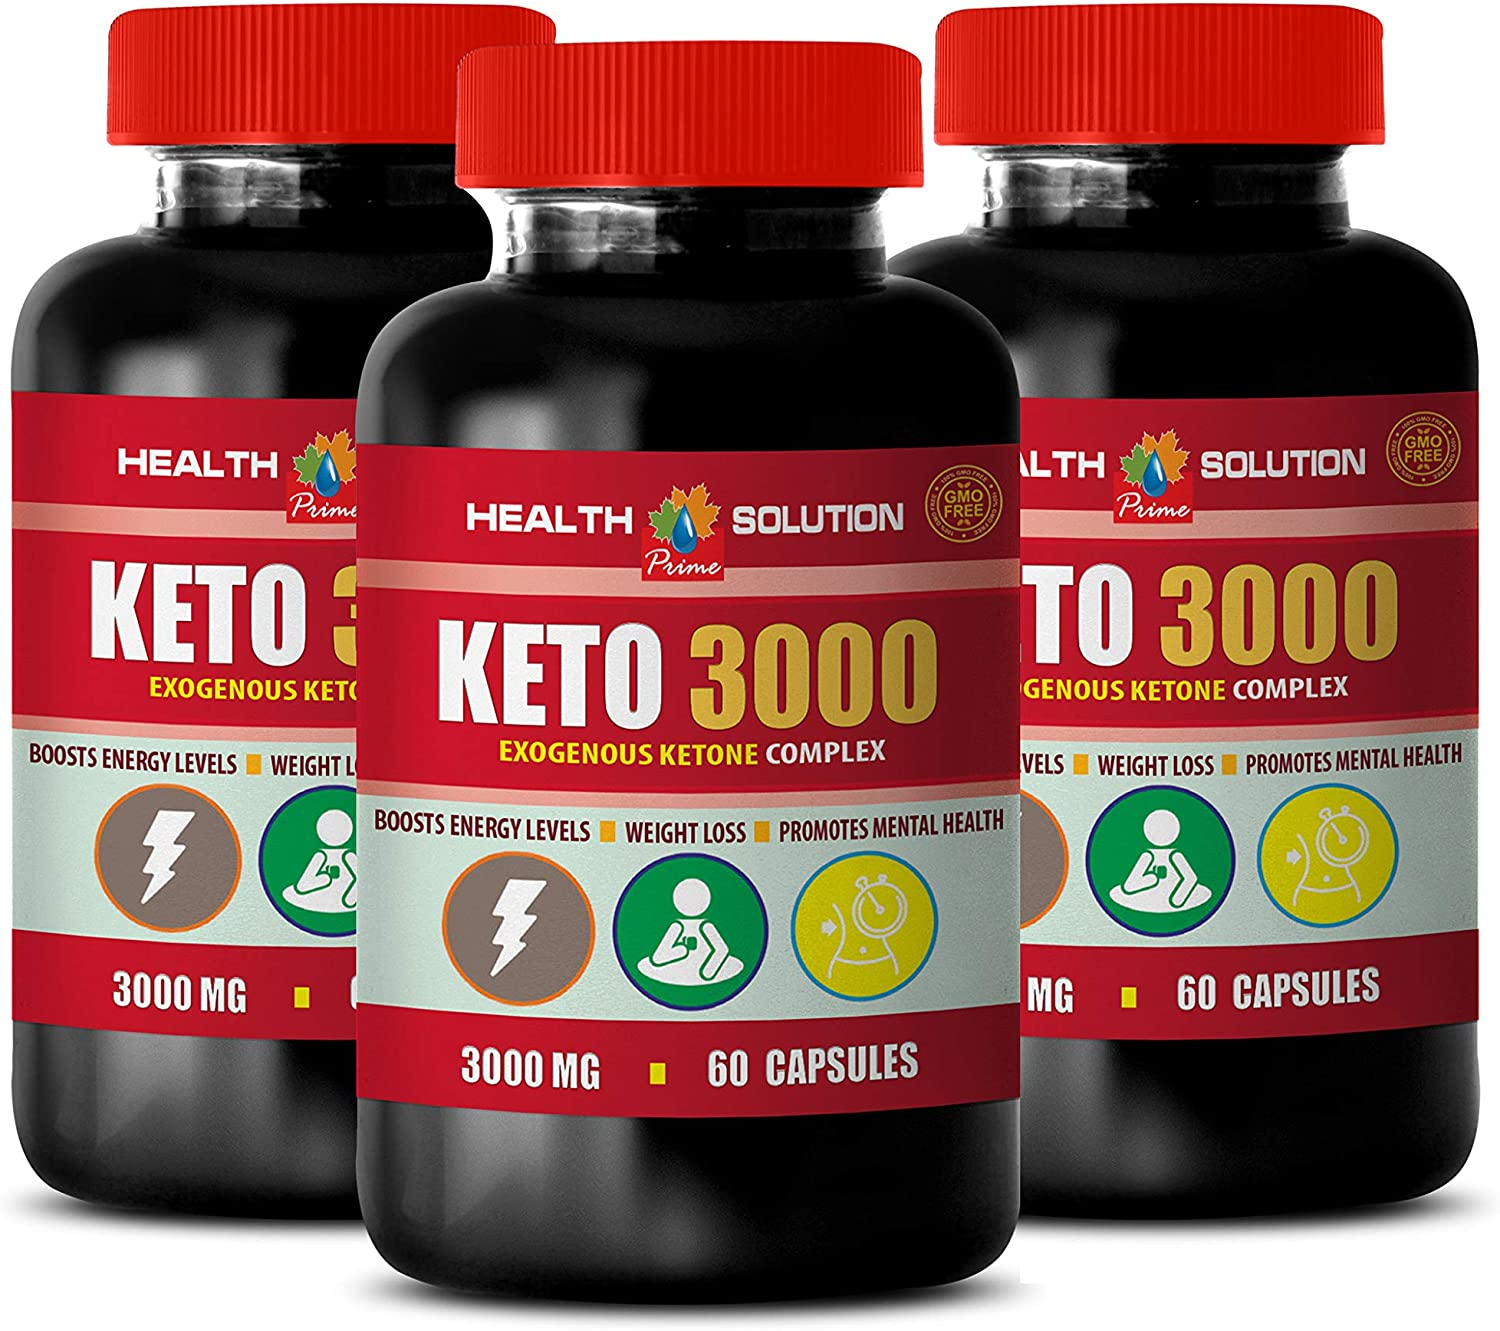 Today's only Energy Fat Burner Pills for Women Ket MG 3000 excellence EXOGENOUS Keto -